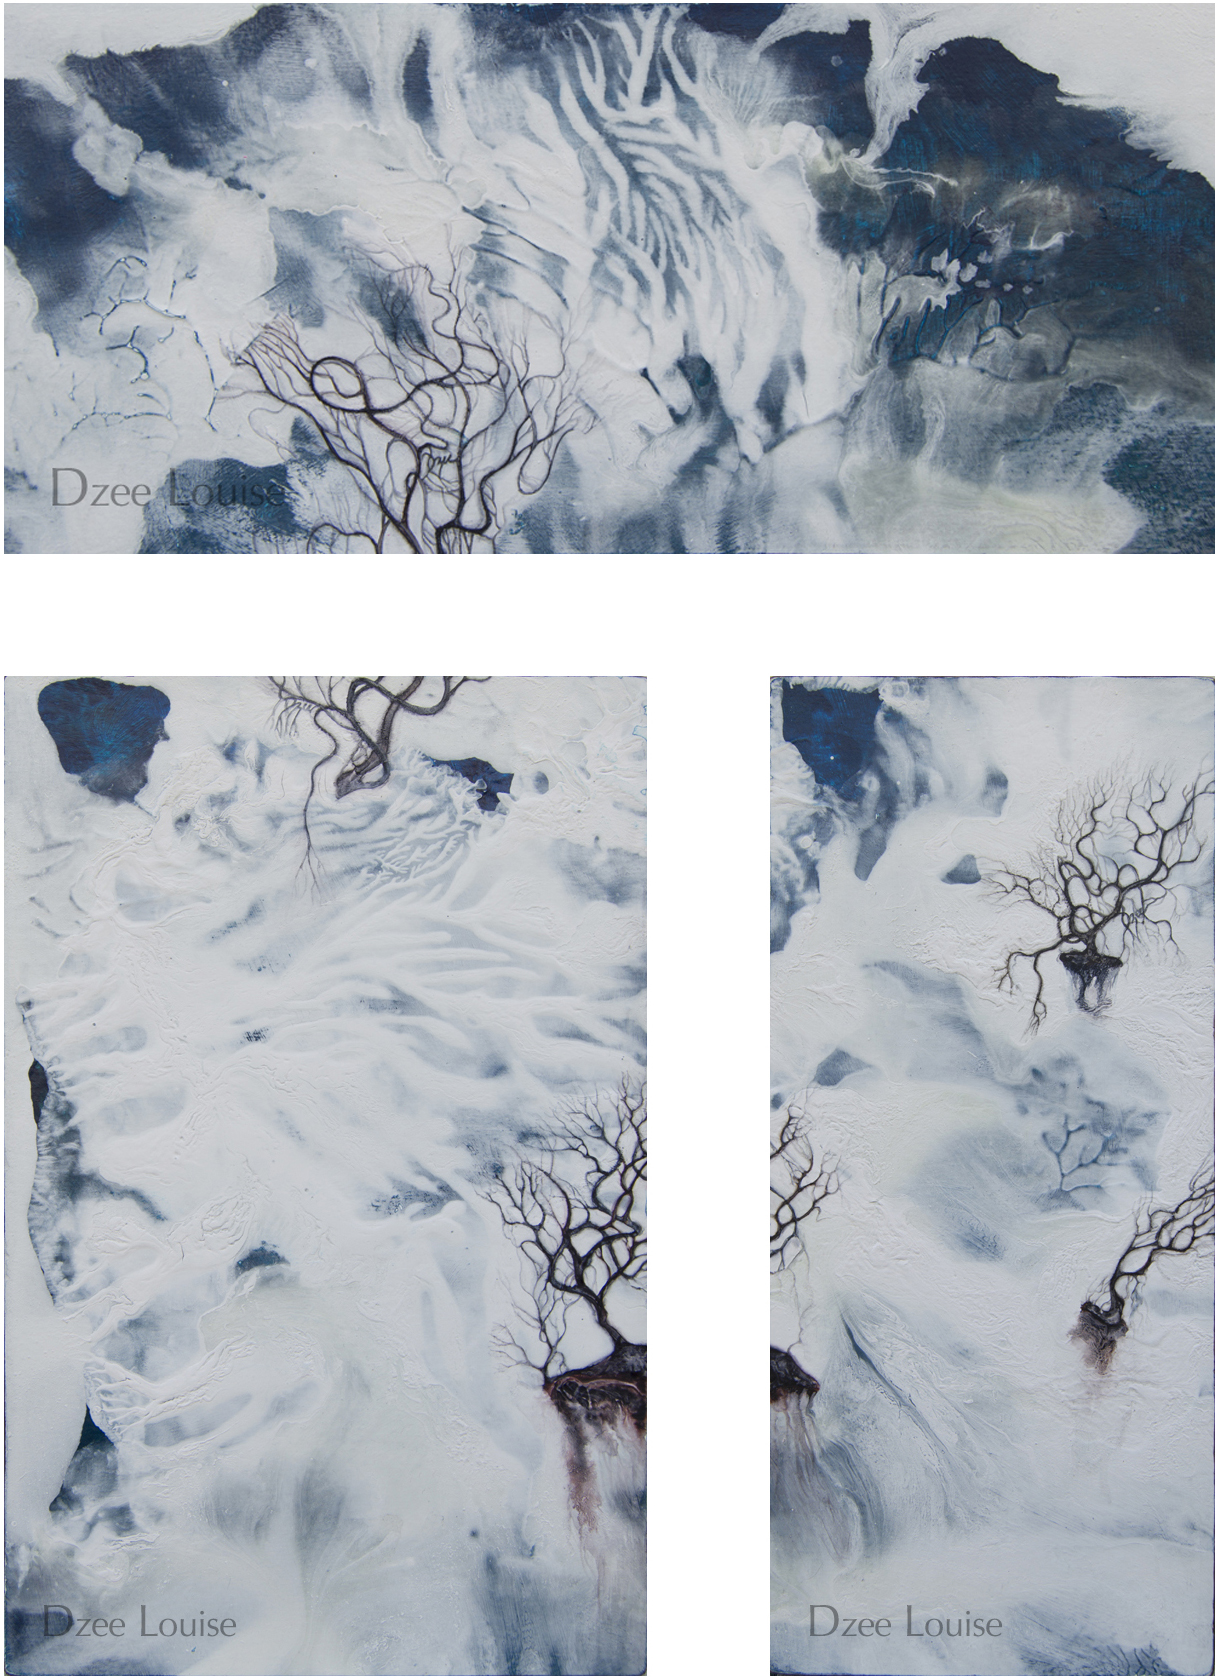 Moment II 23 Triptych - acrylic and watercolour on wood panel, White and blue ground with three floating tree and root forms in burnt umber